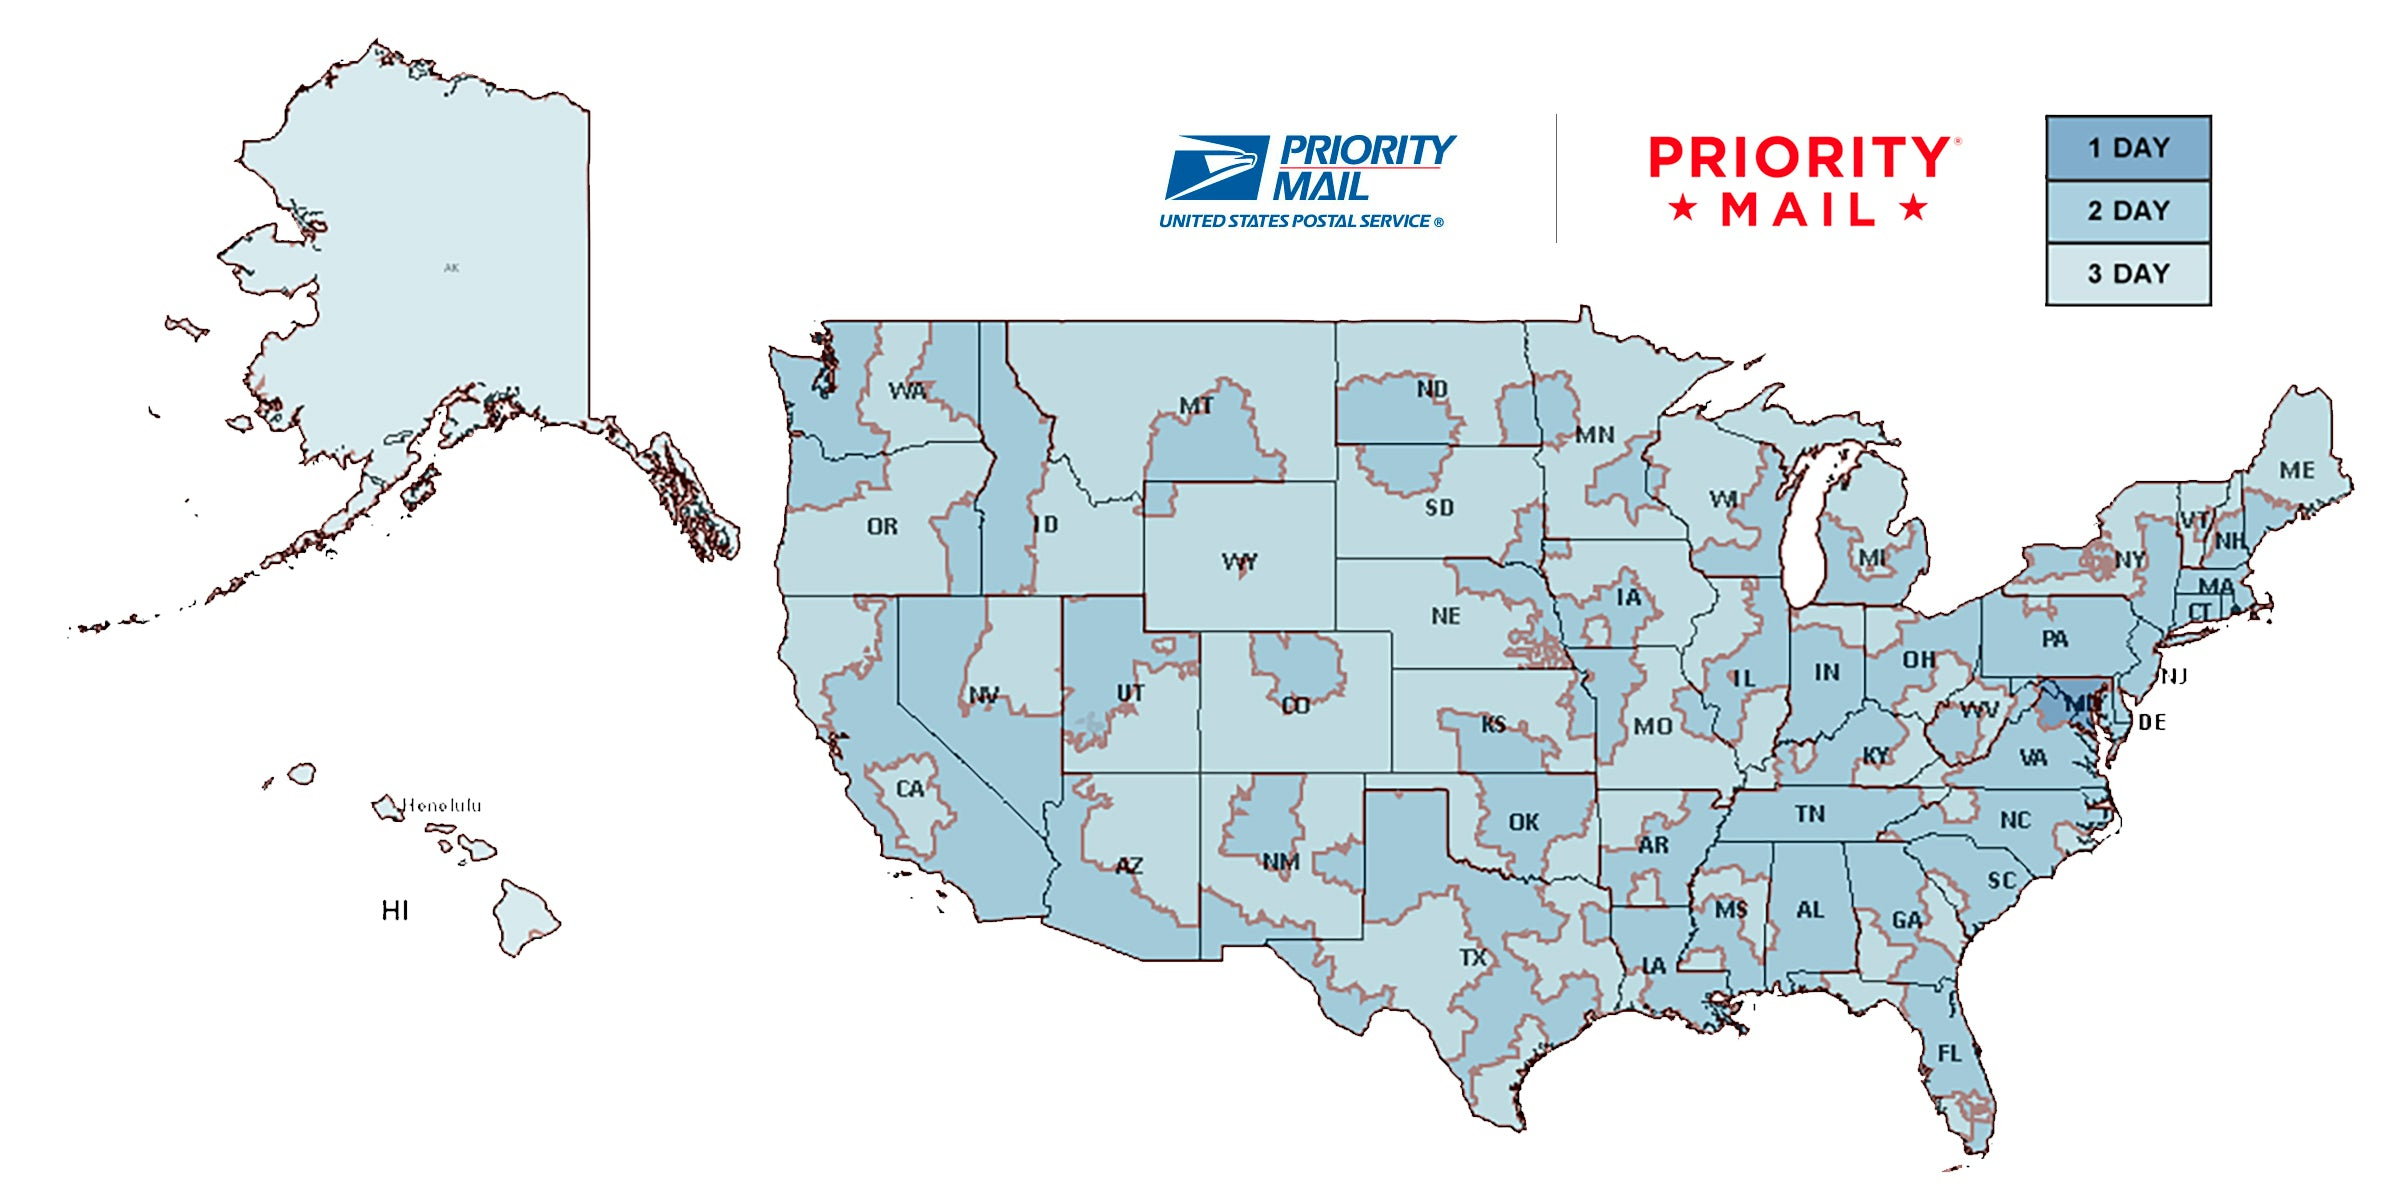 USPS Priority Mail Transit Times (estimated)